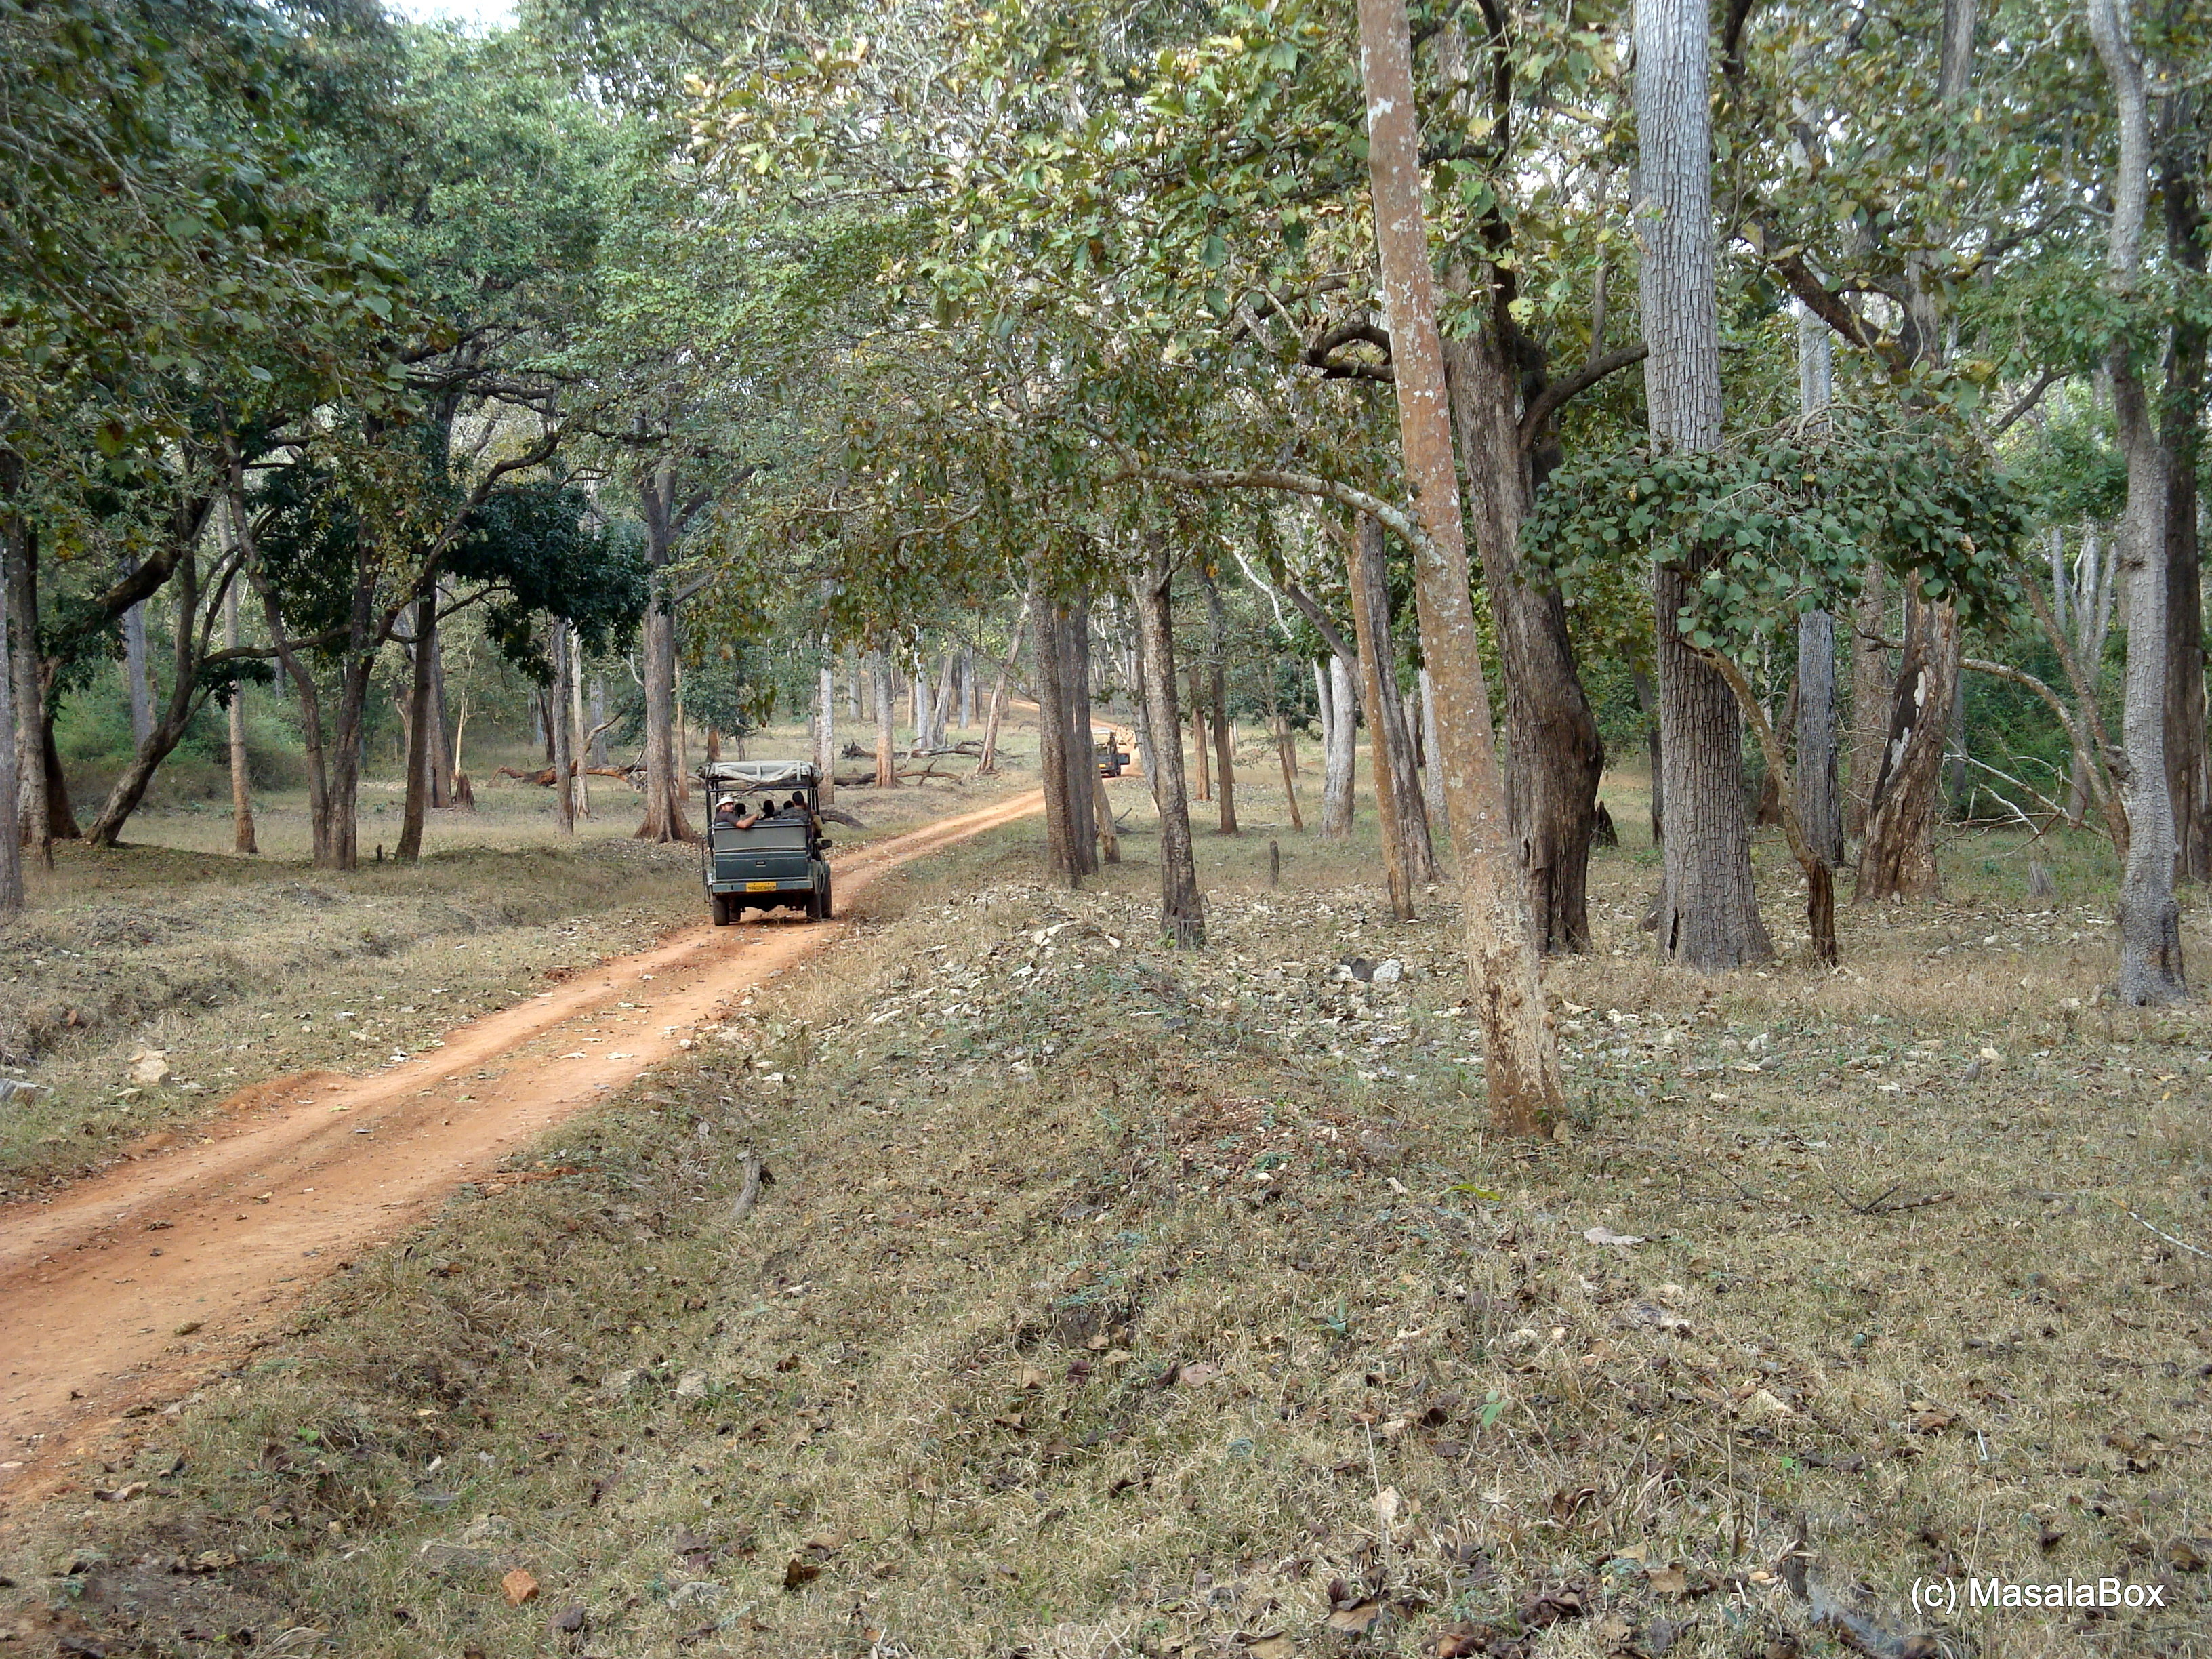 Waiting for the tiger. Jeep Safari